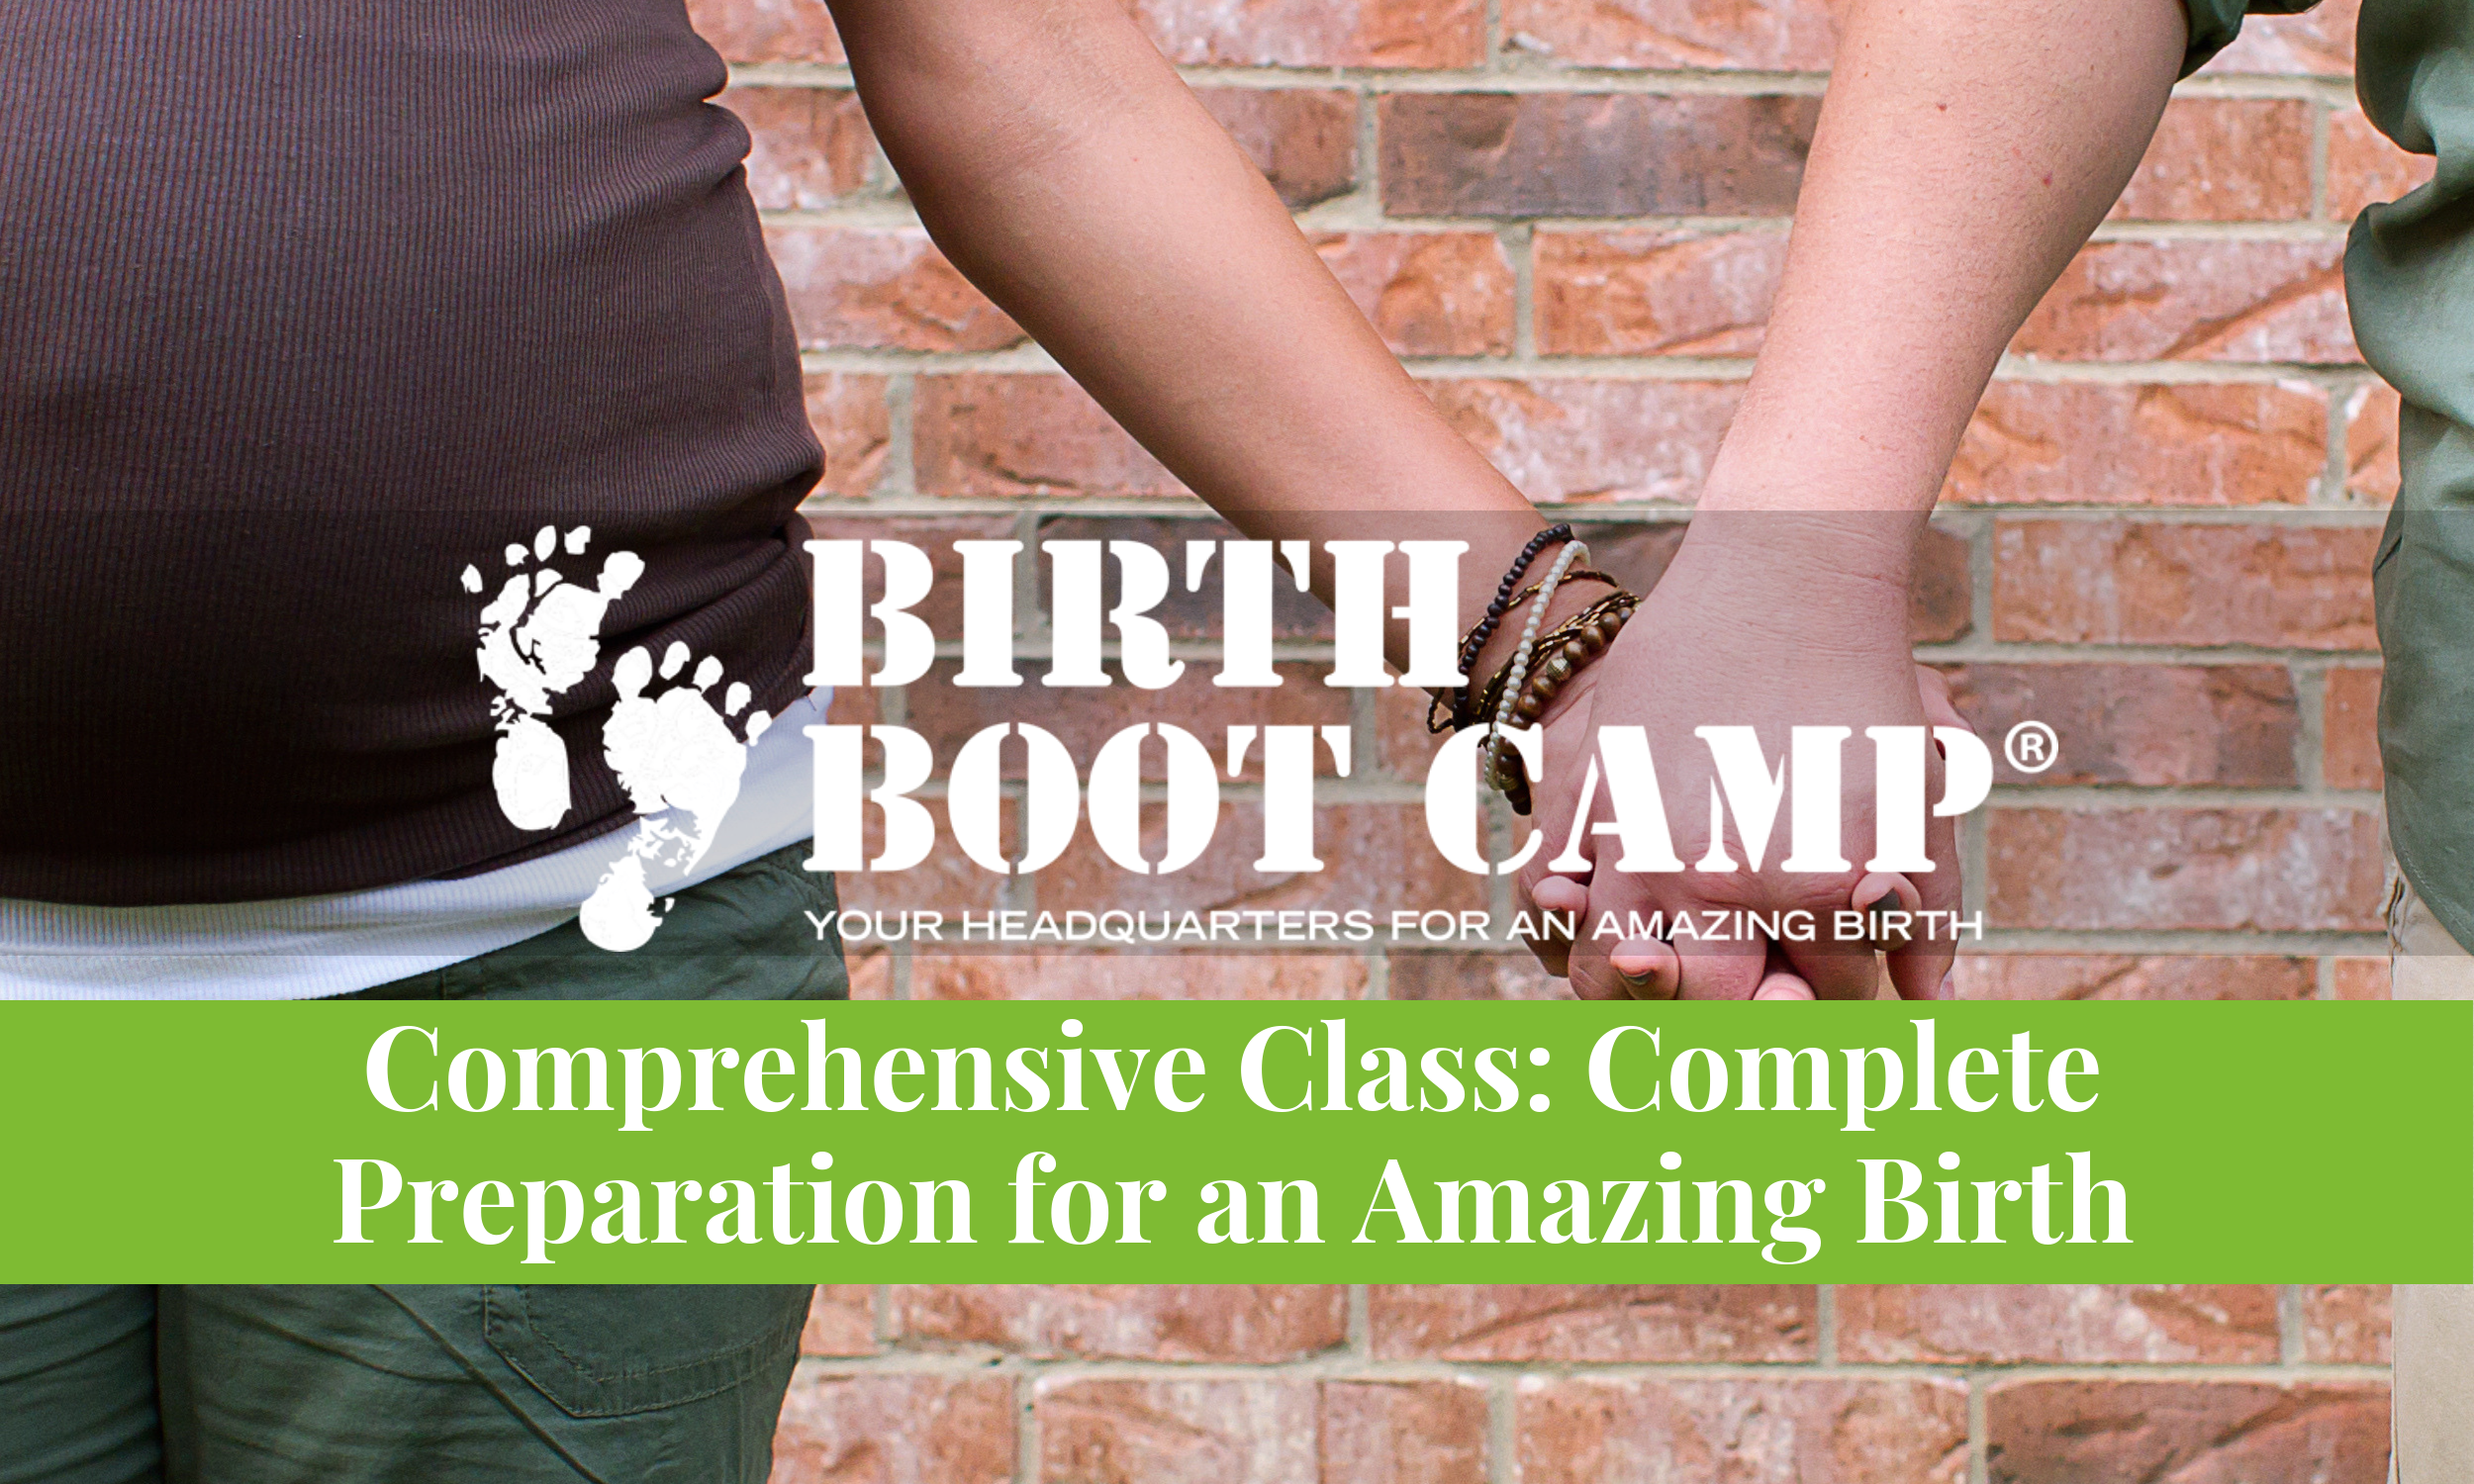 Birth Boot Camp Comprehensive: Complete Preparation for an Amazing Birth